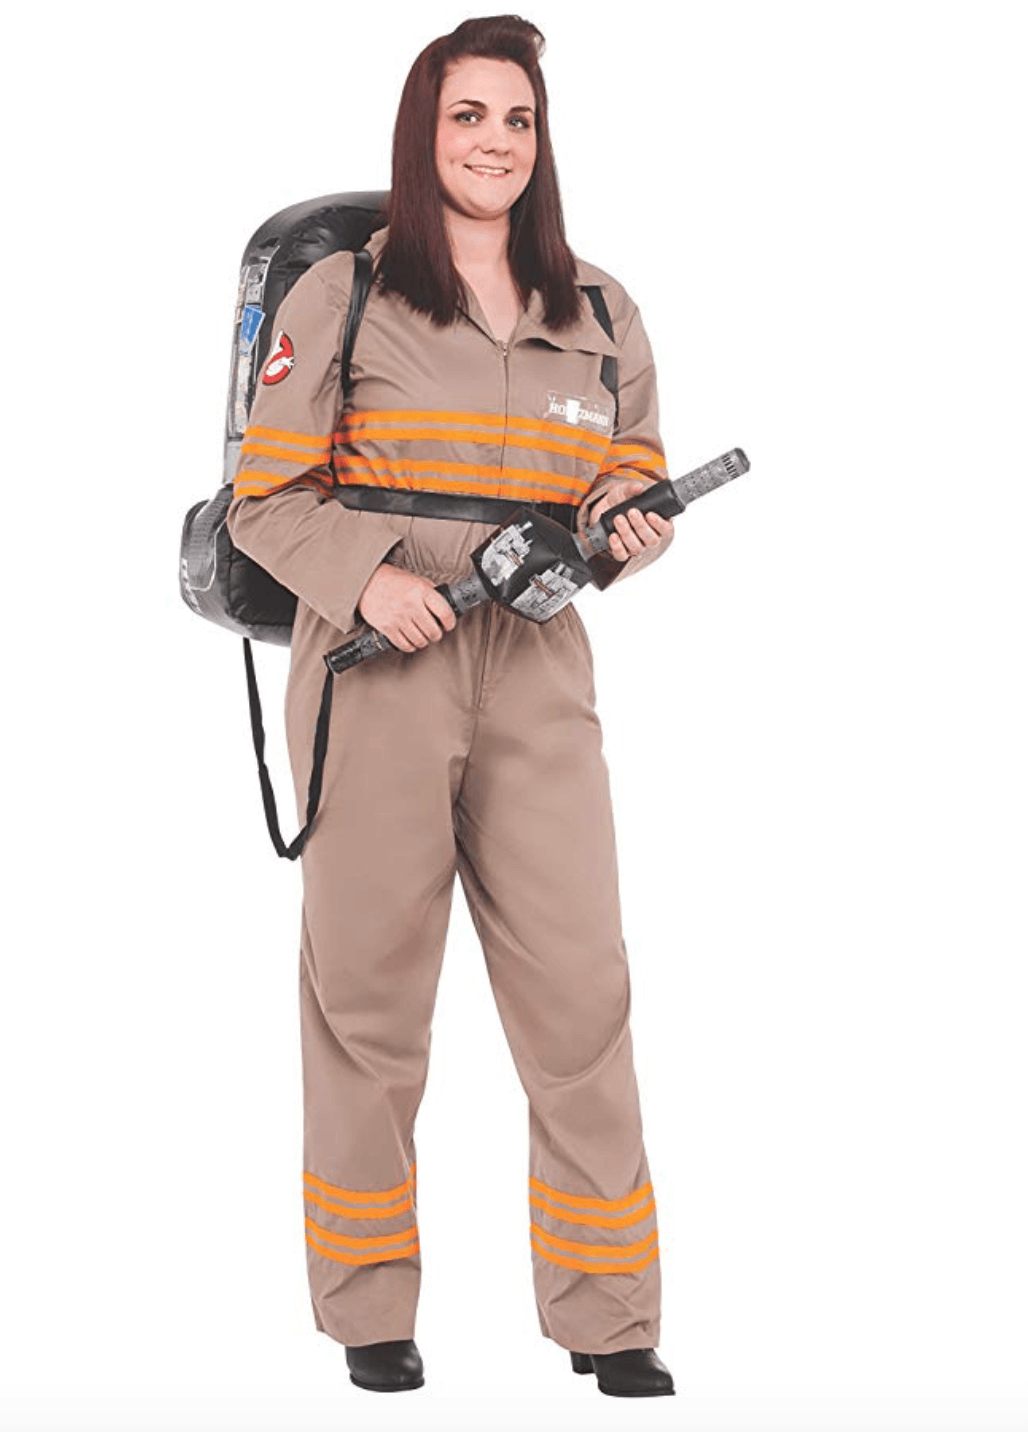 A woman wearing a brown overalls with orange stripes on its chest and legs, carrying a proton pack.